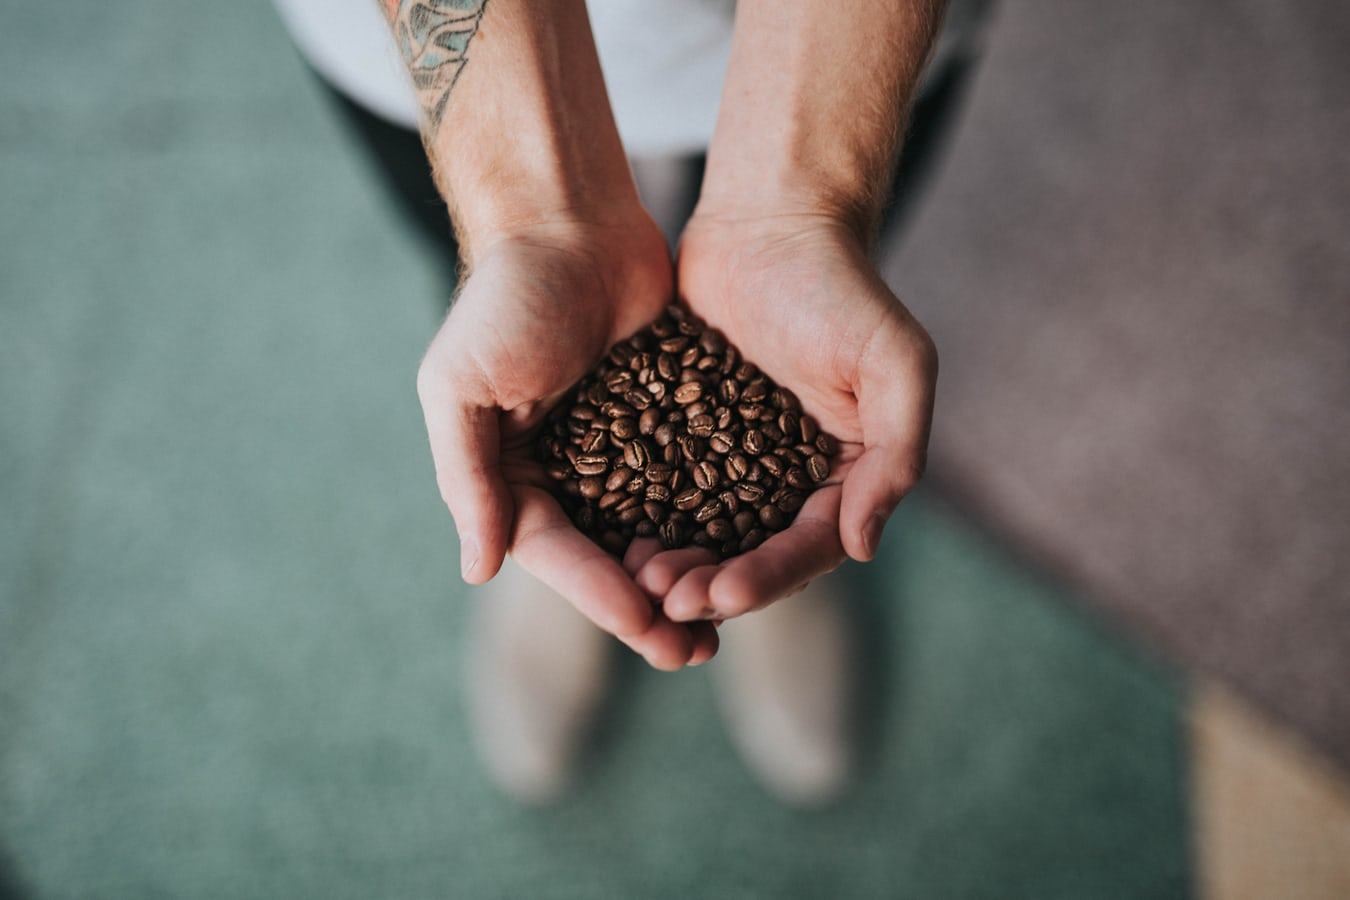 Peoeples Organic sources its coffee from some of the top coffee farmers in the world.